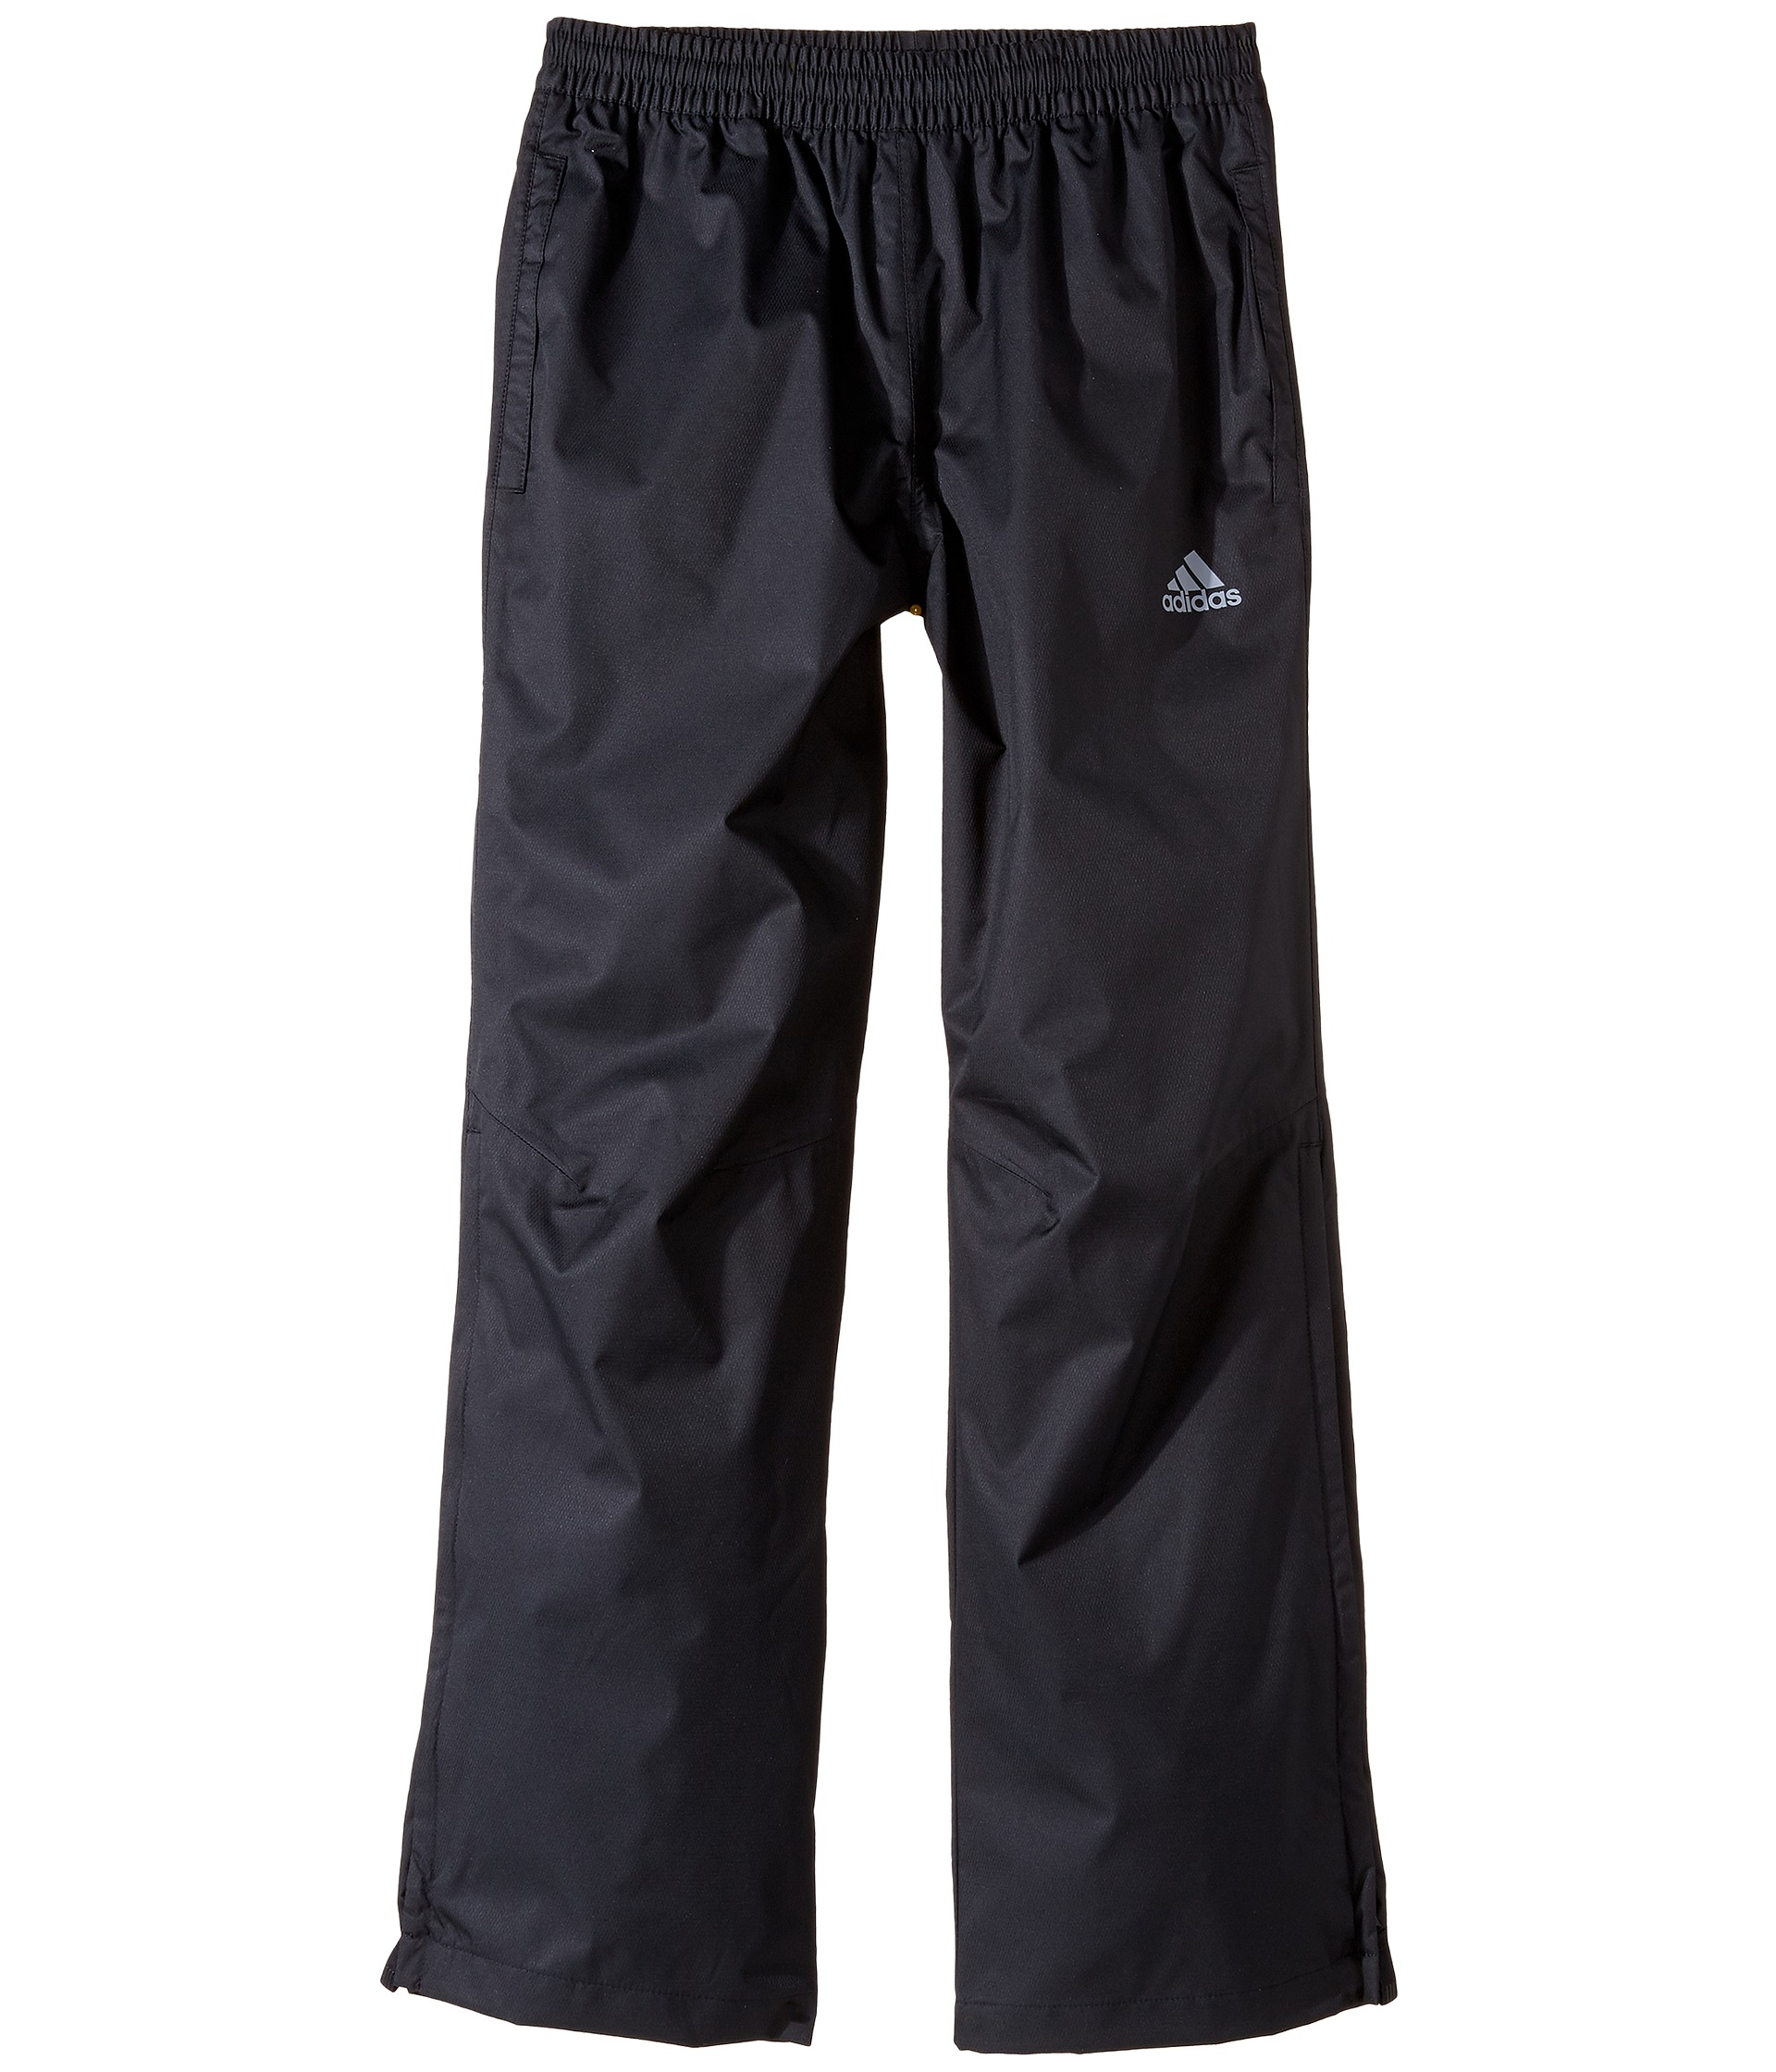 Adidas golf kids provisional rain pants big kids at for Adidas golf rain shirt